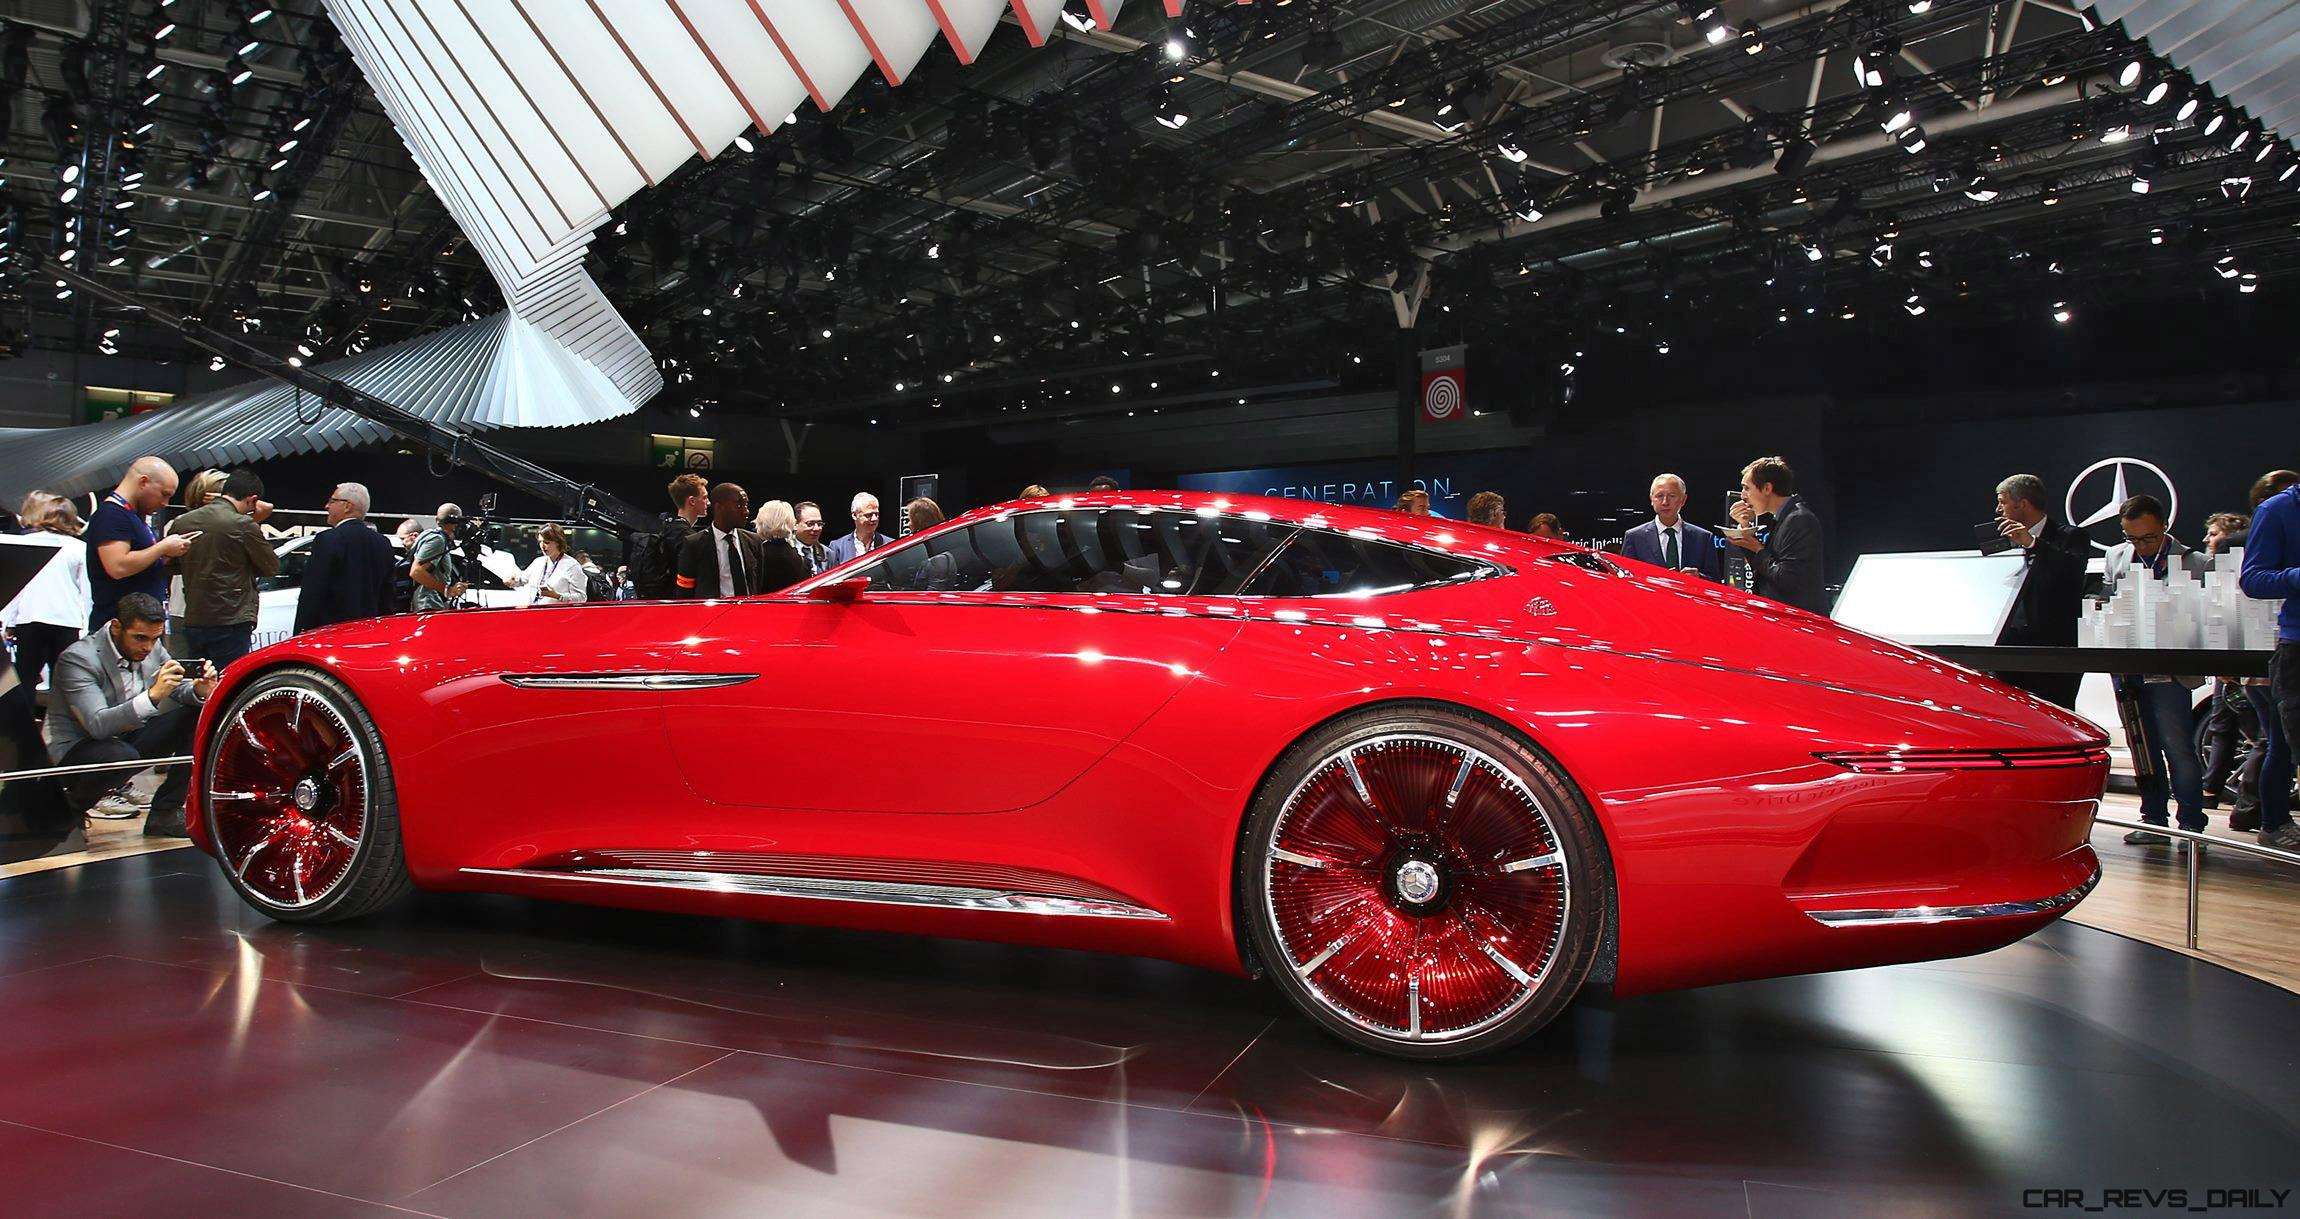 2016 vision mercedes maybach 6 paris debut gallery render for Concept car 2016